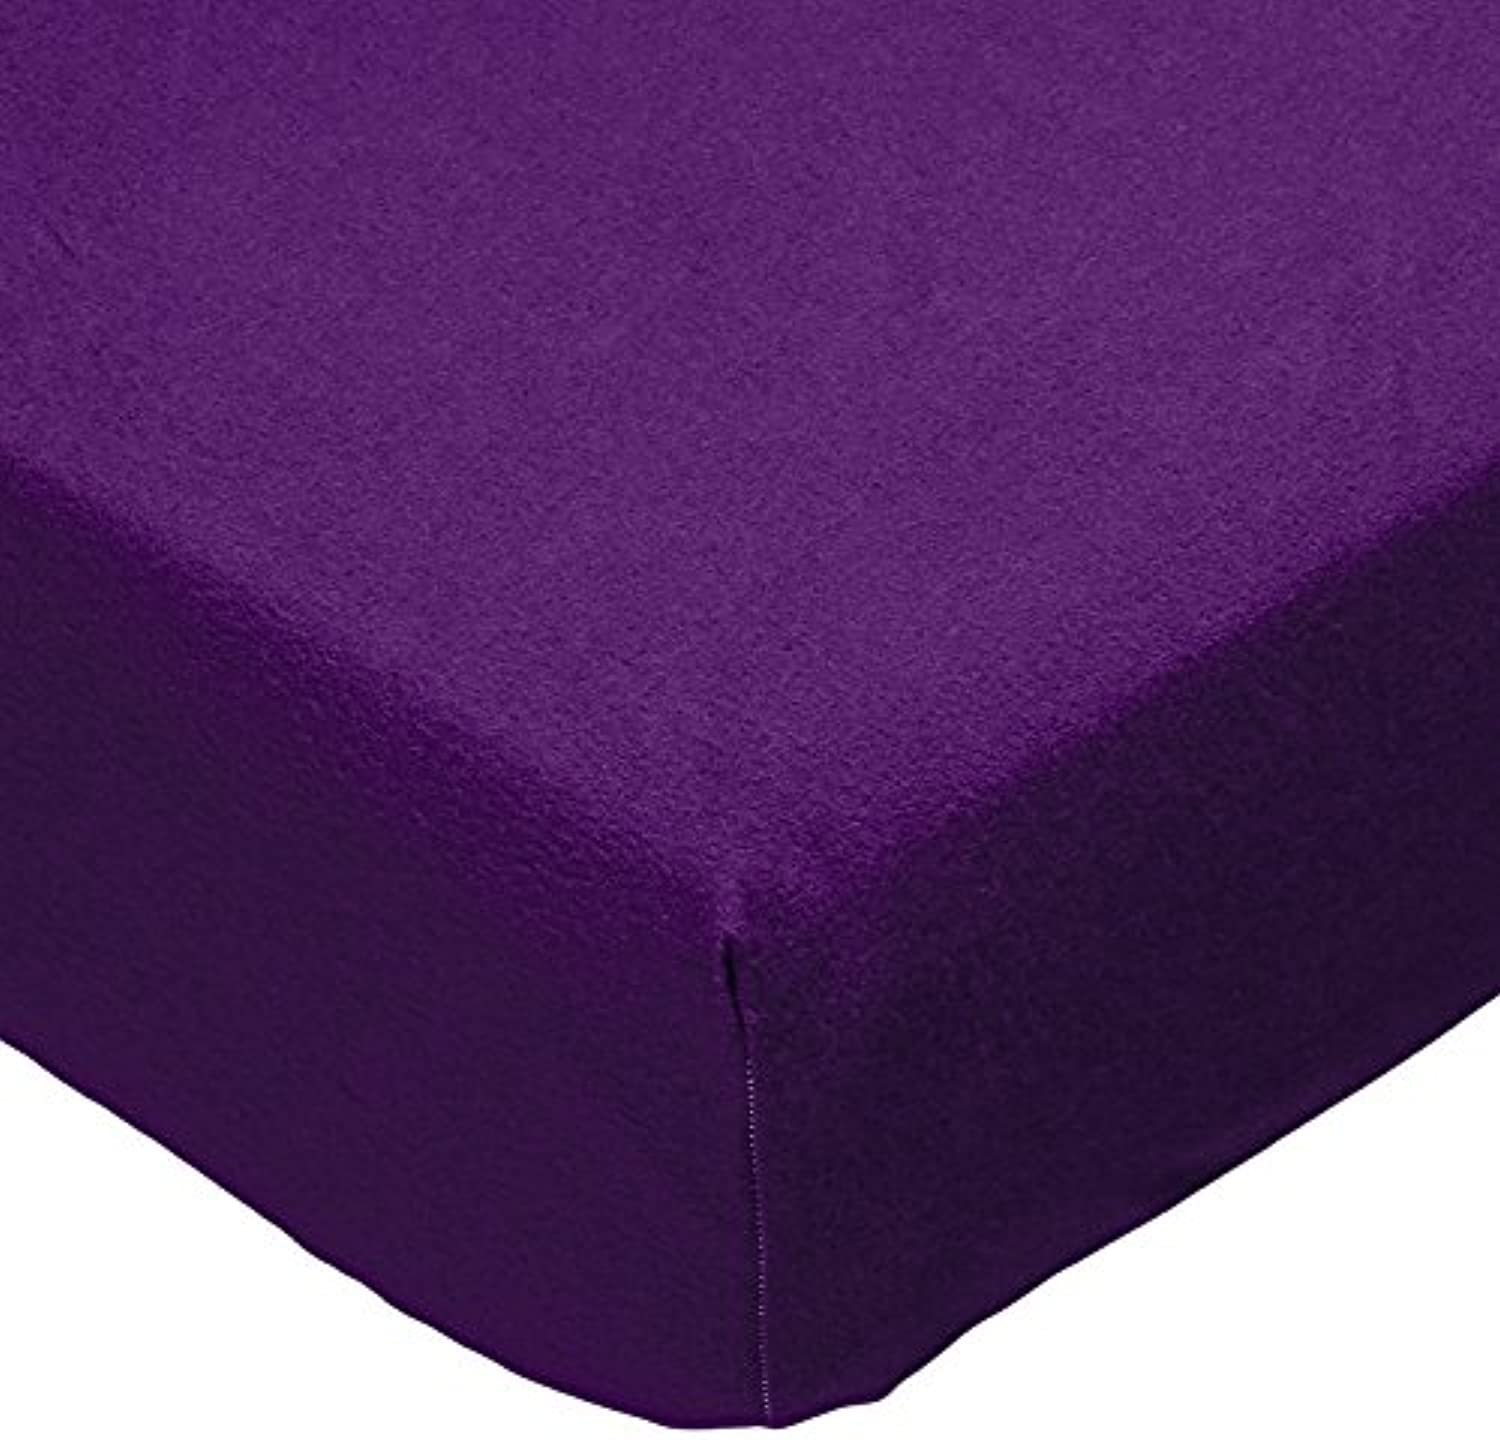 SheetWorld PC-FS12 PC-FS12 Fitted Portable / Mini Crib Sheet - Flannel - Purple - Made In USA by sheetworld